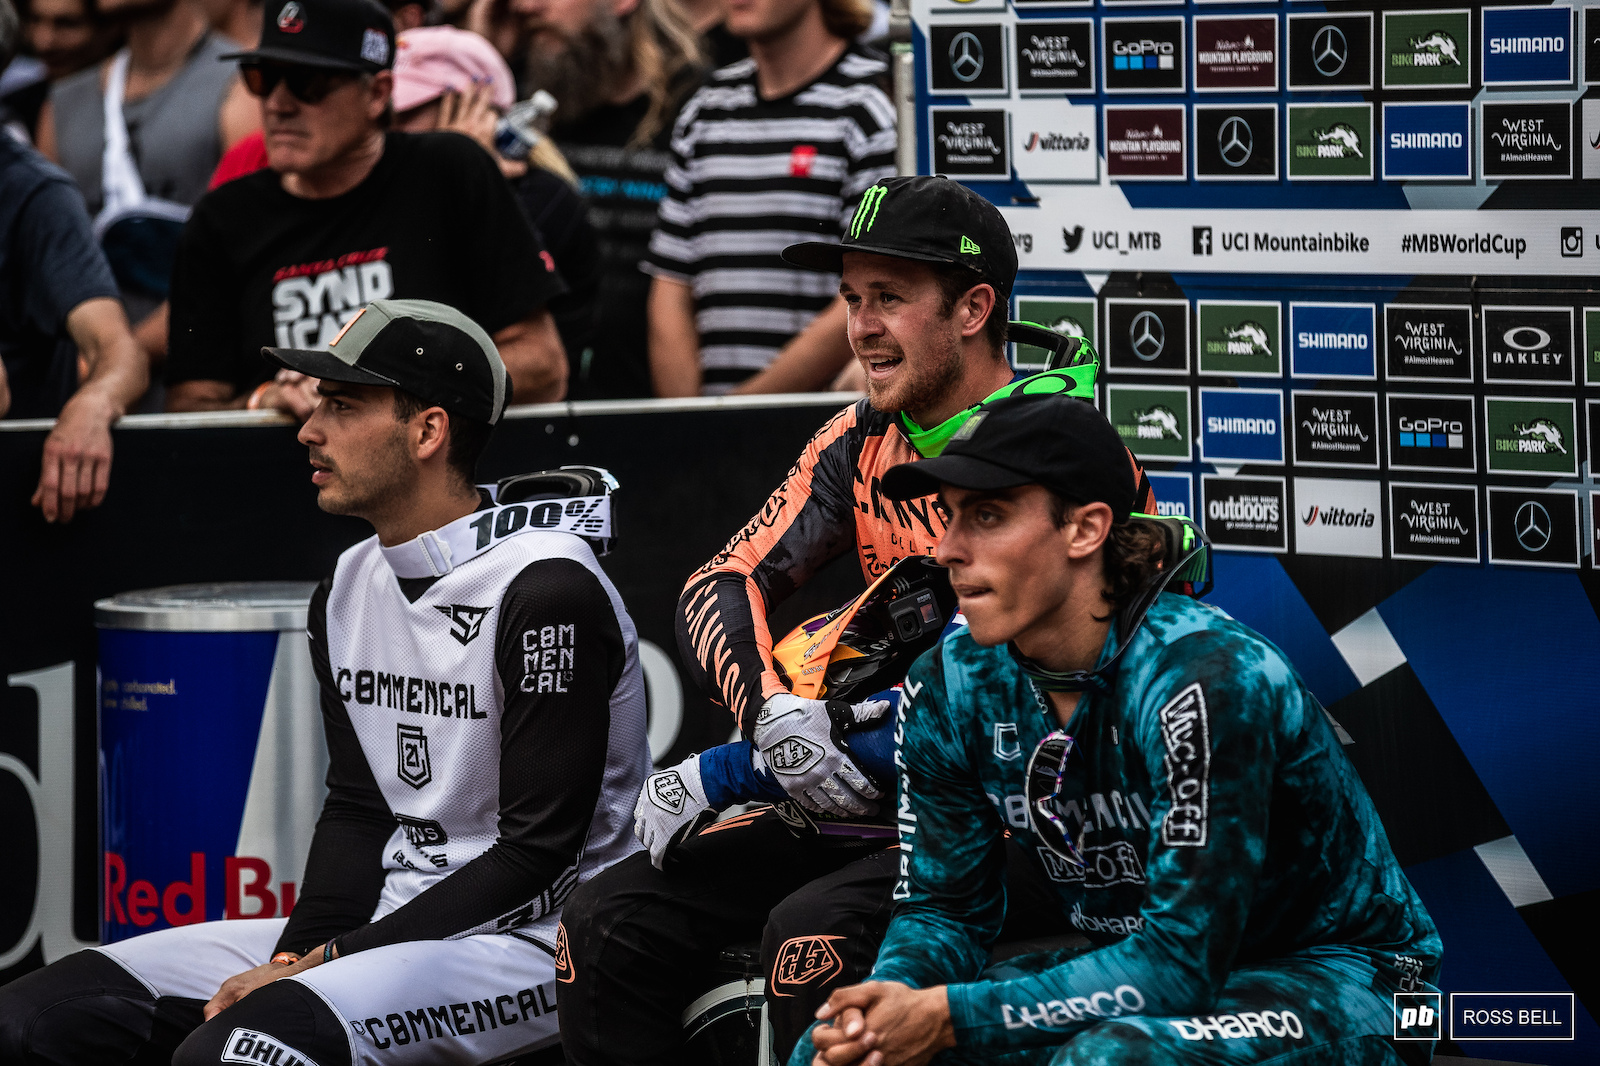 Nervous moments for Troy Brosnan on the hot seat as he waits for Loic Bruni to complete his run.